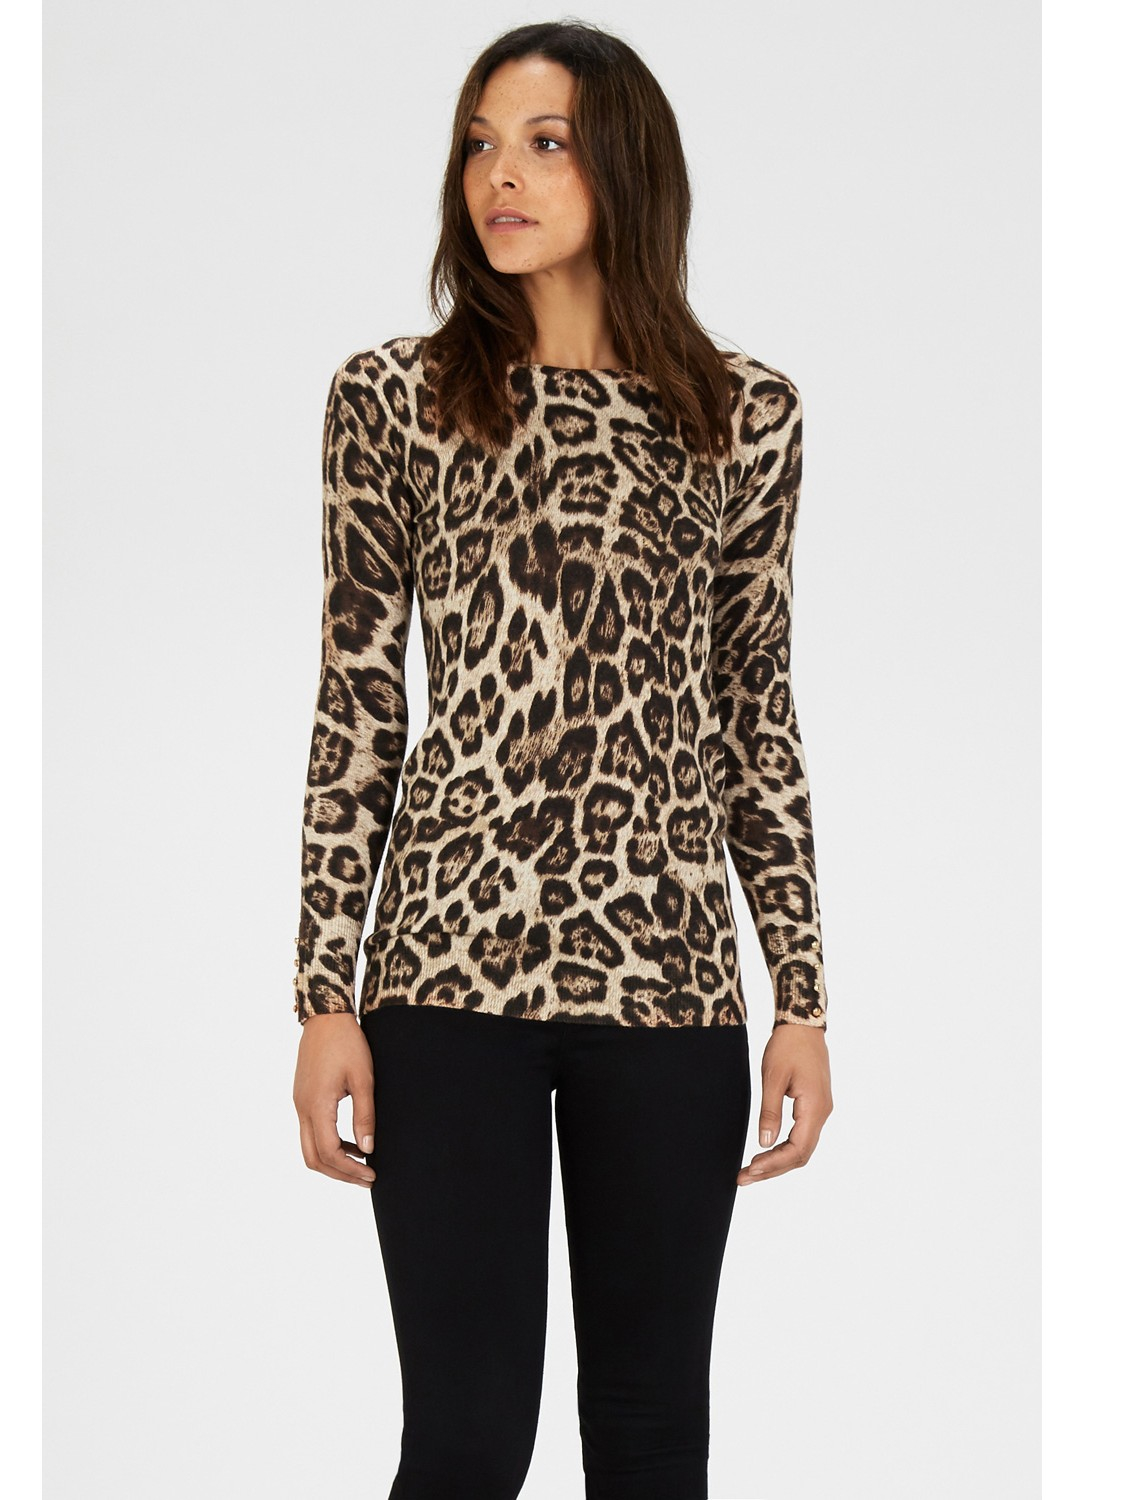 Contrasted Leopard Print Knit Jumper available in Grey/Black or Maroon/Black. Buy cheap Jumpers for just £5 on yageimer.ga